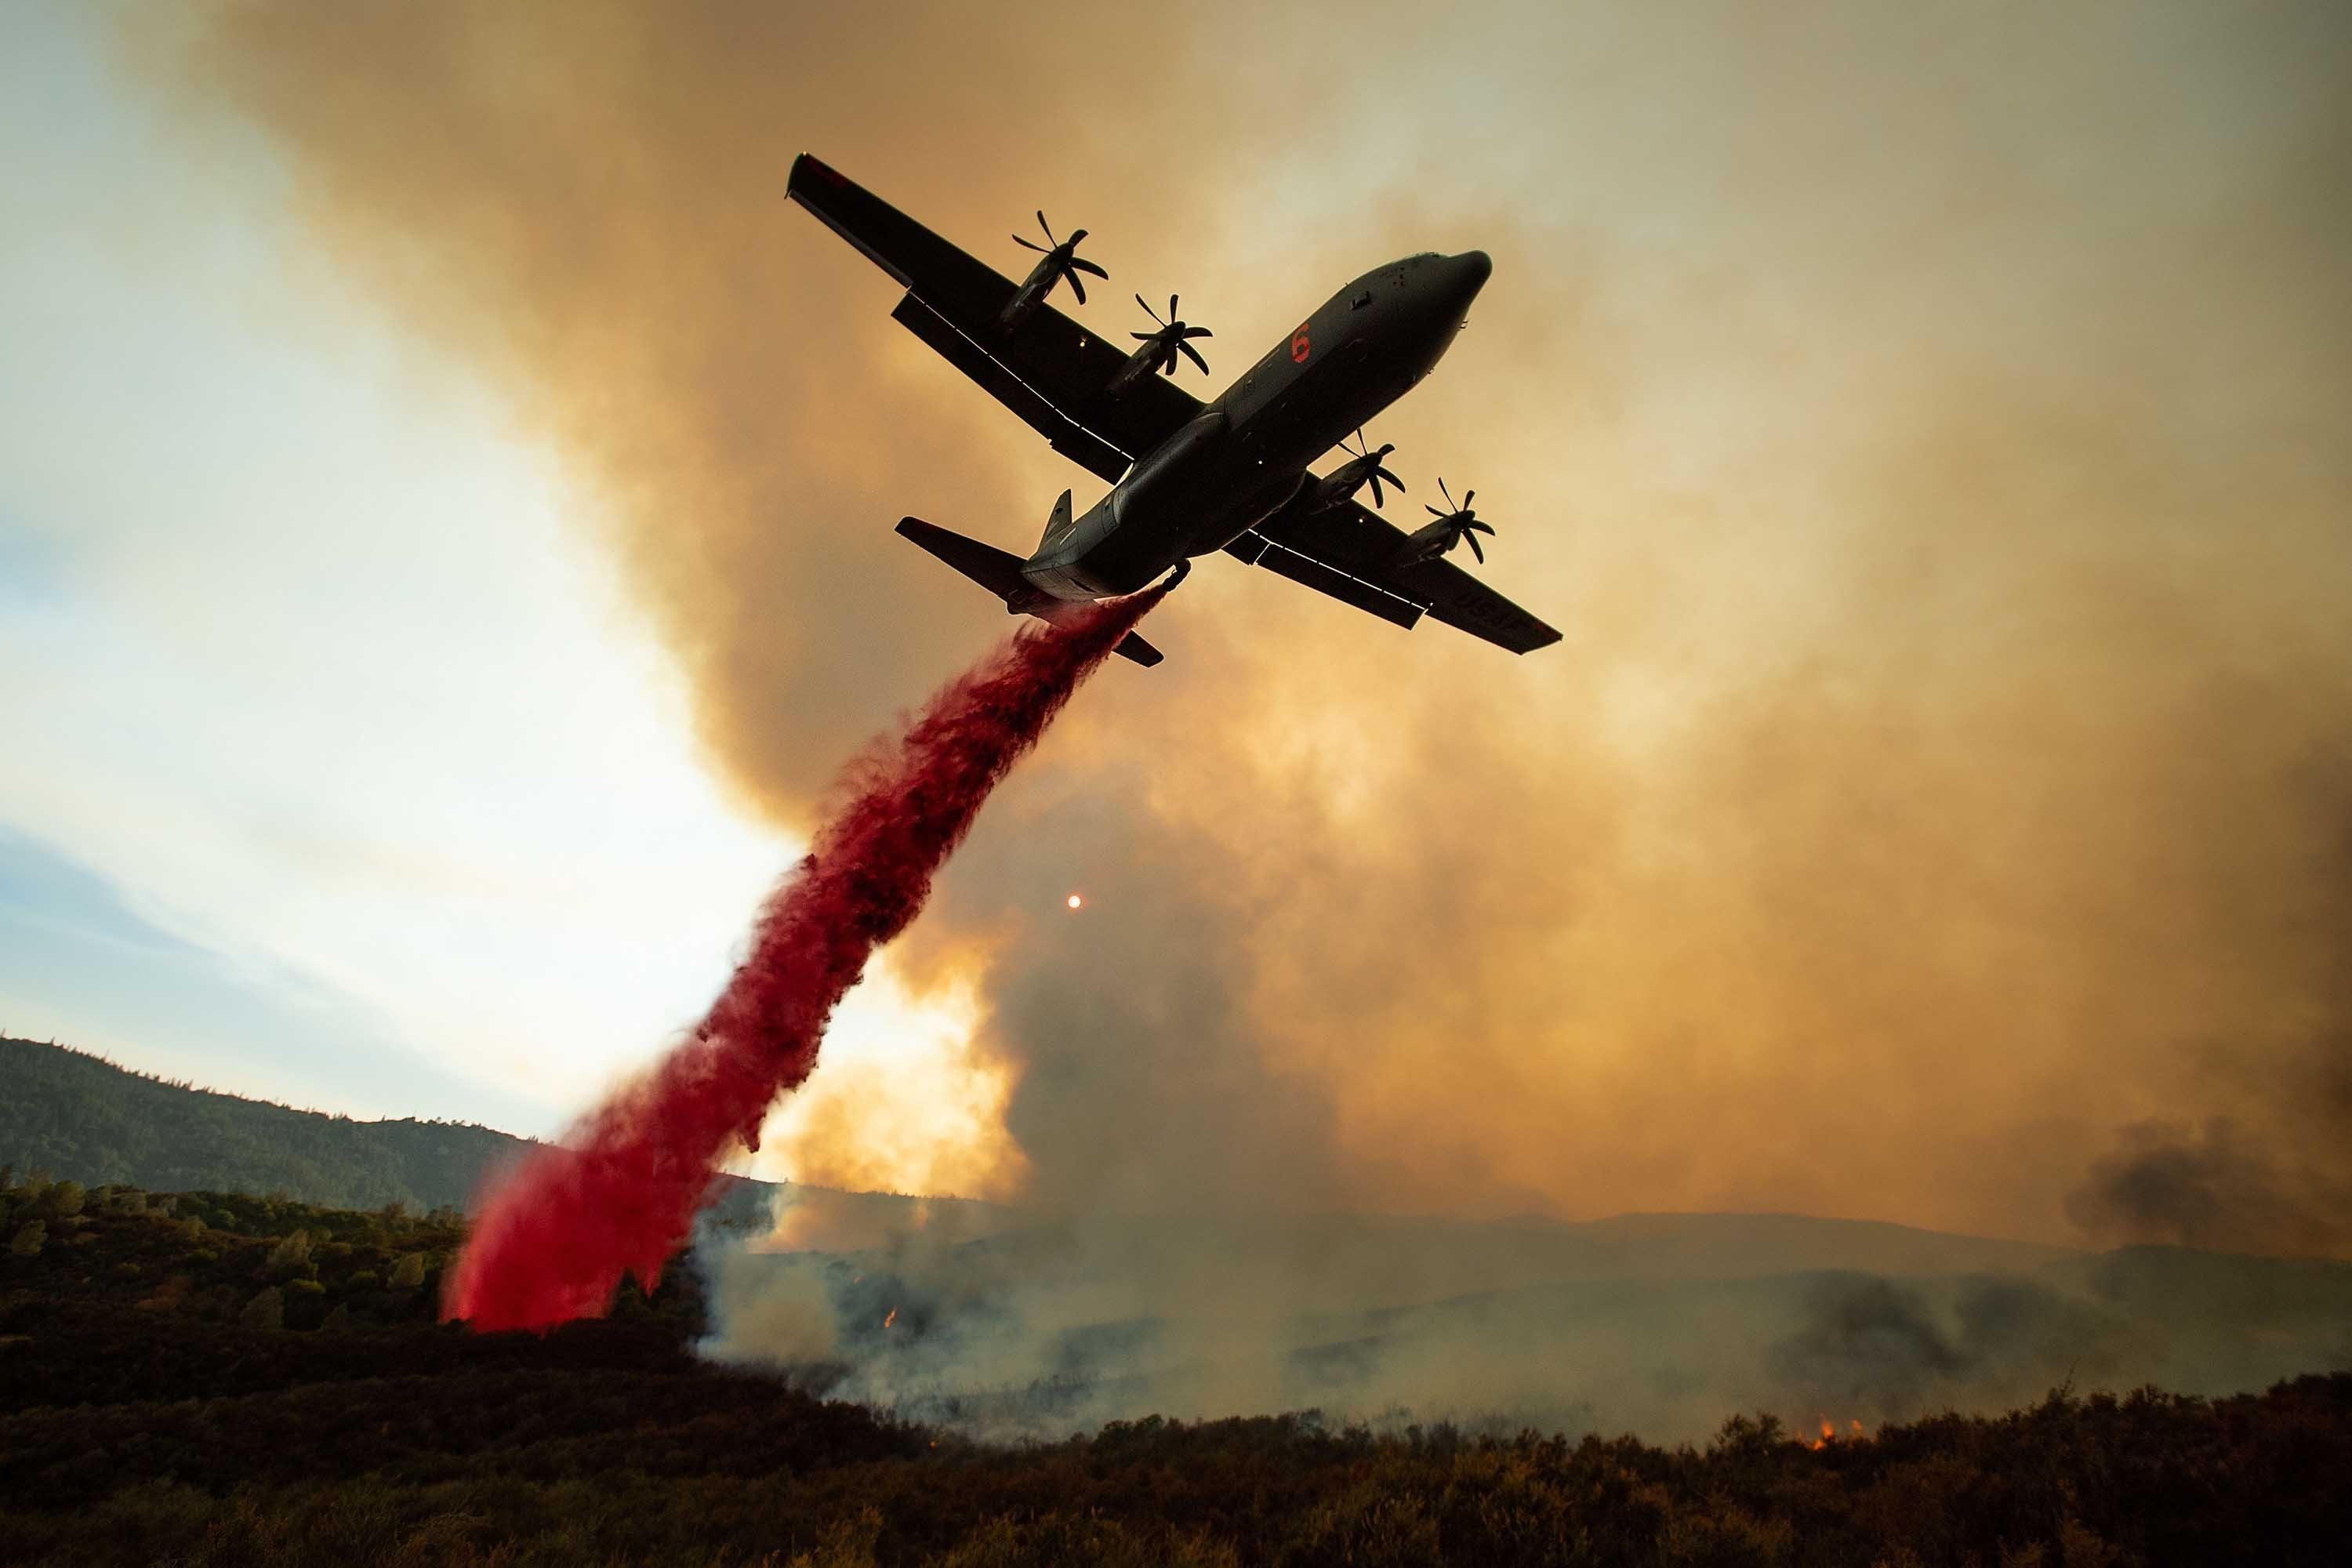 There are 17 large wildfires burning across the state and more than 14,000 firefighters working to put out the blazes Cal Fire said on Tuesday